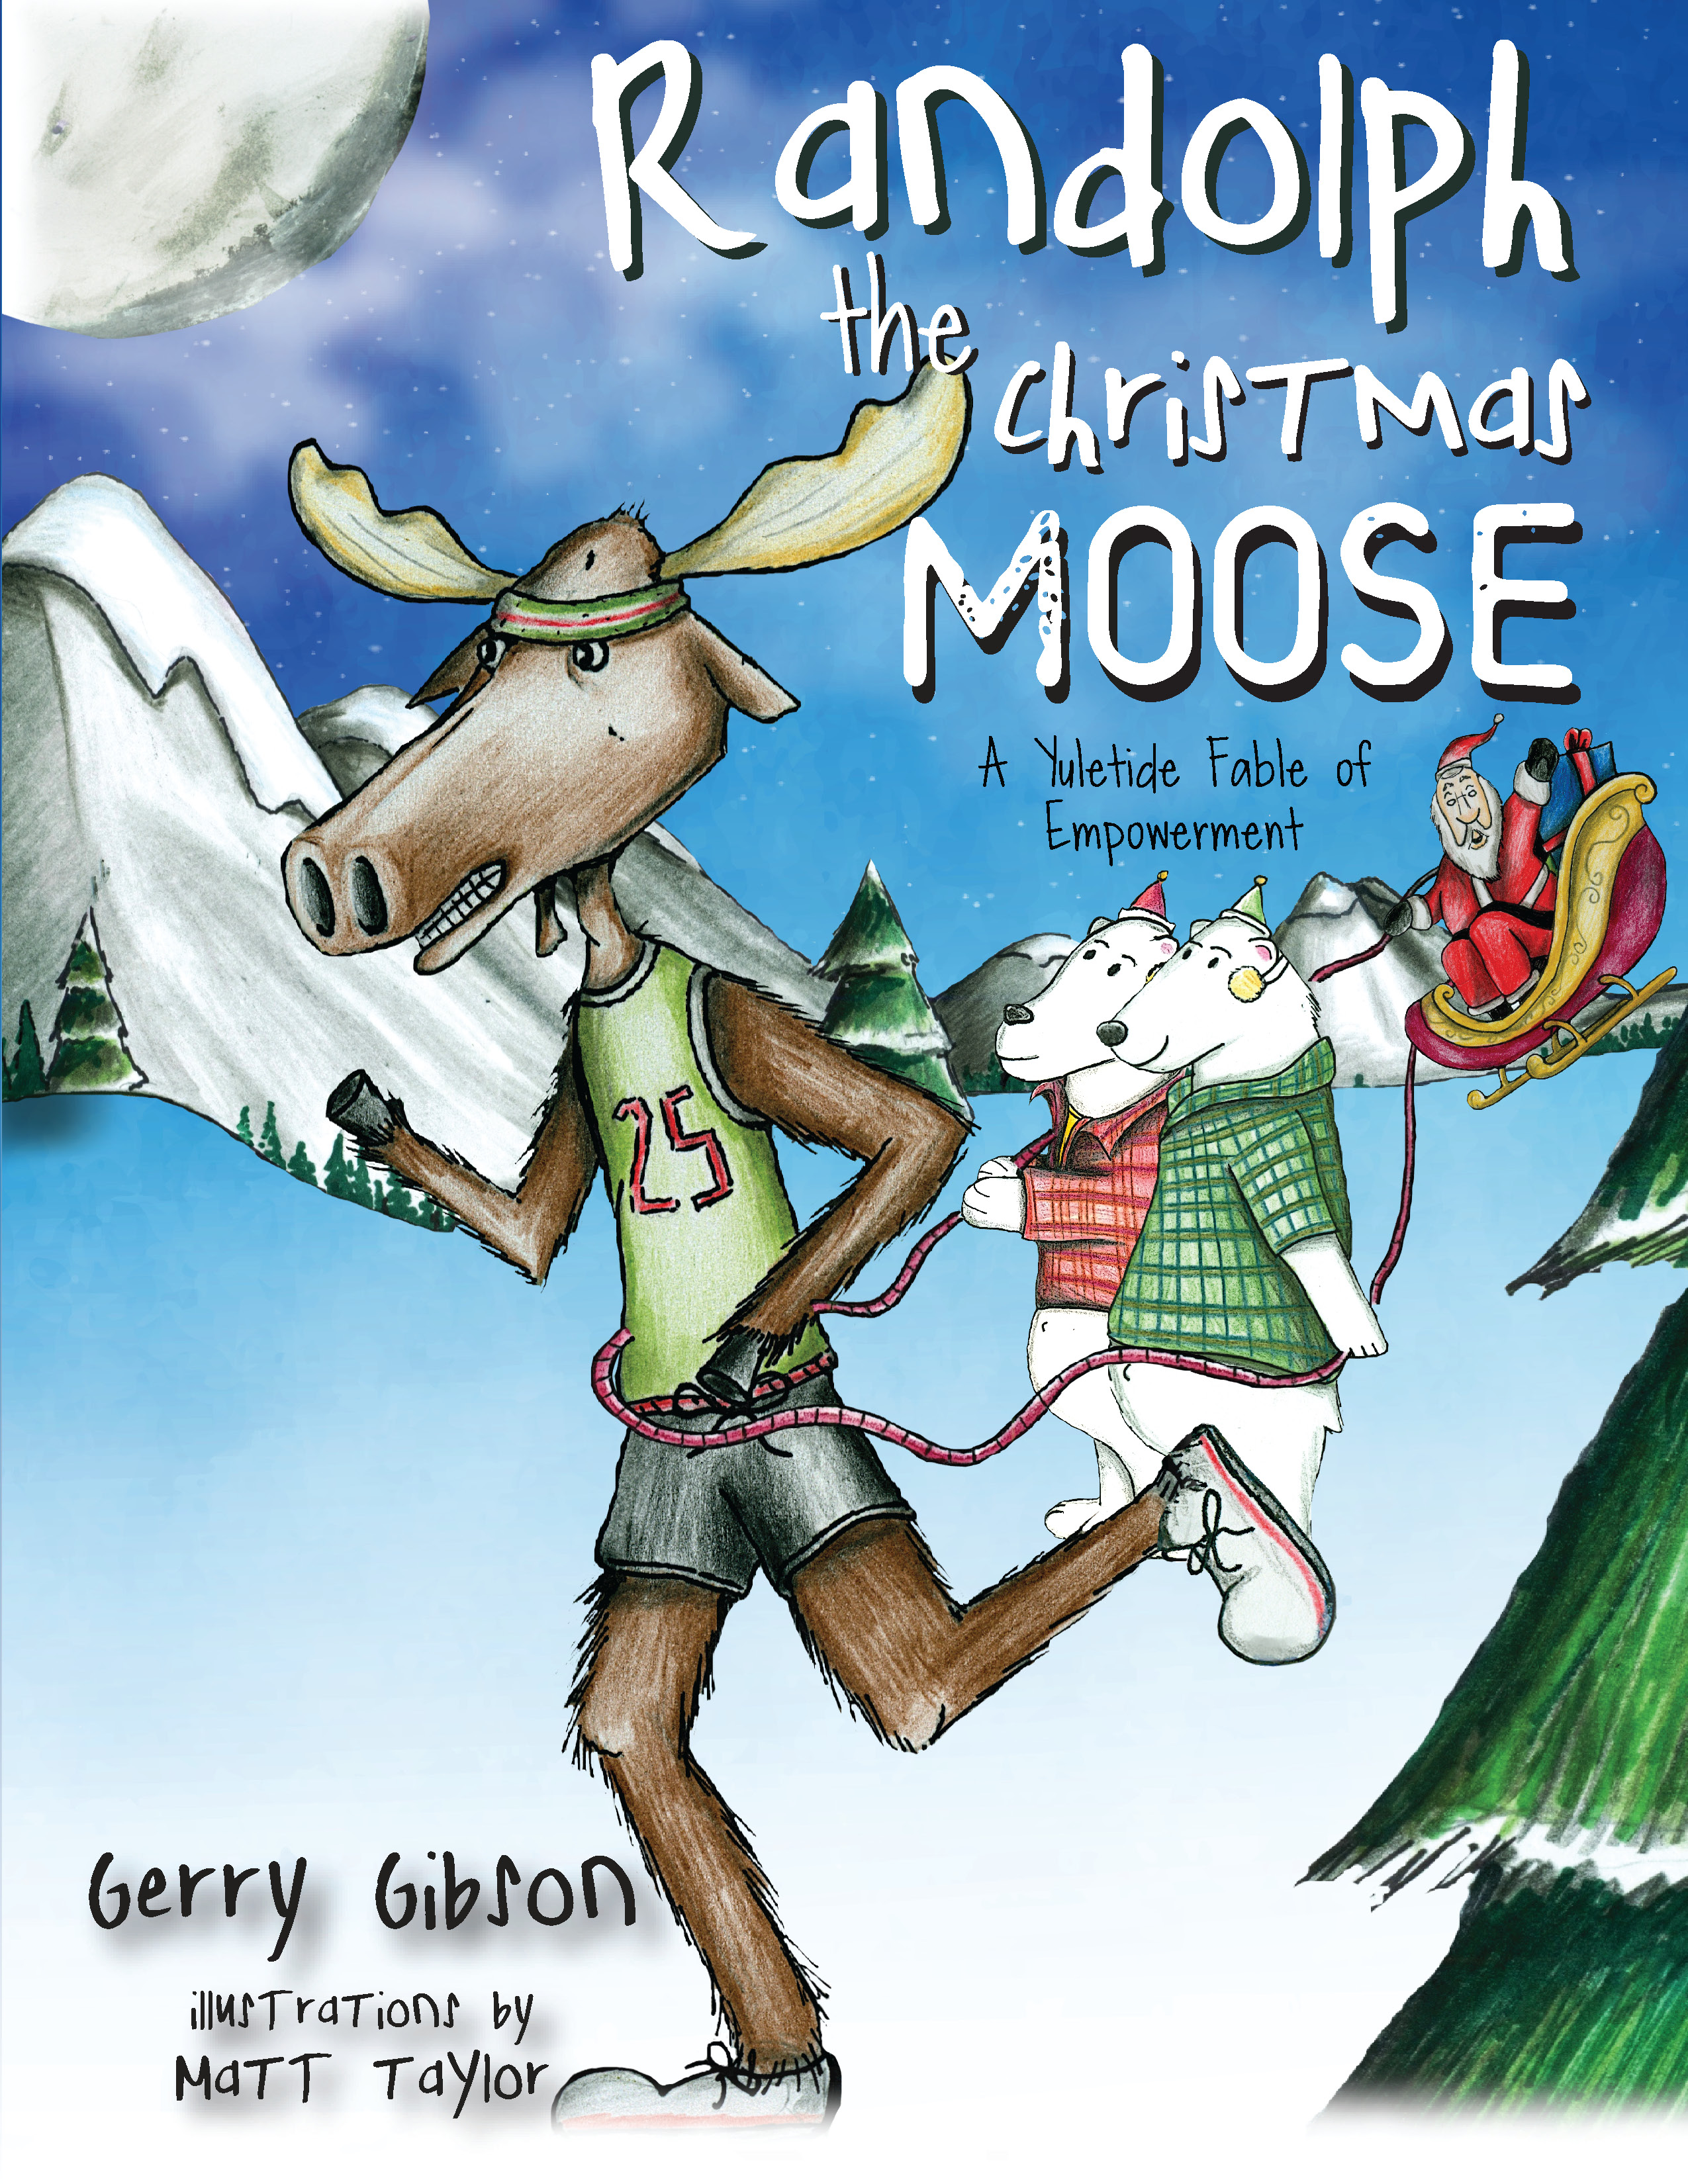 Randolph the Christmas Moose: A Yuletide Fable